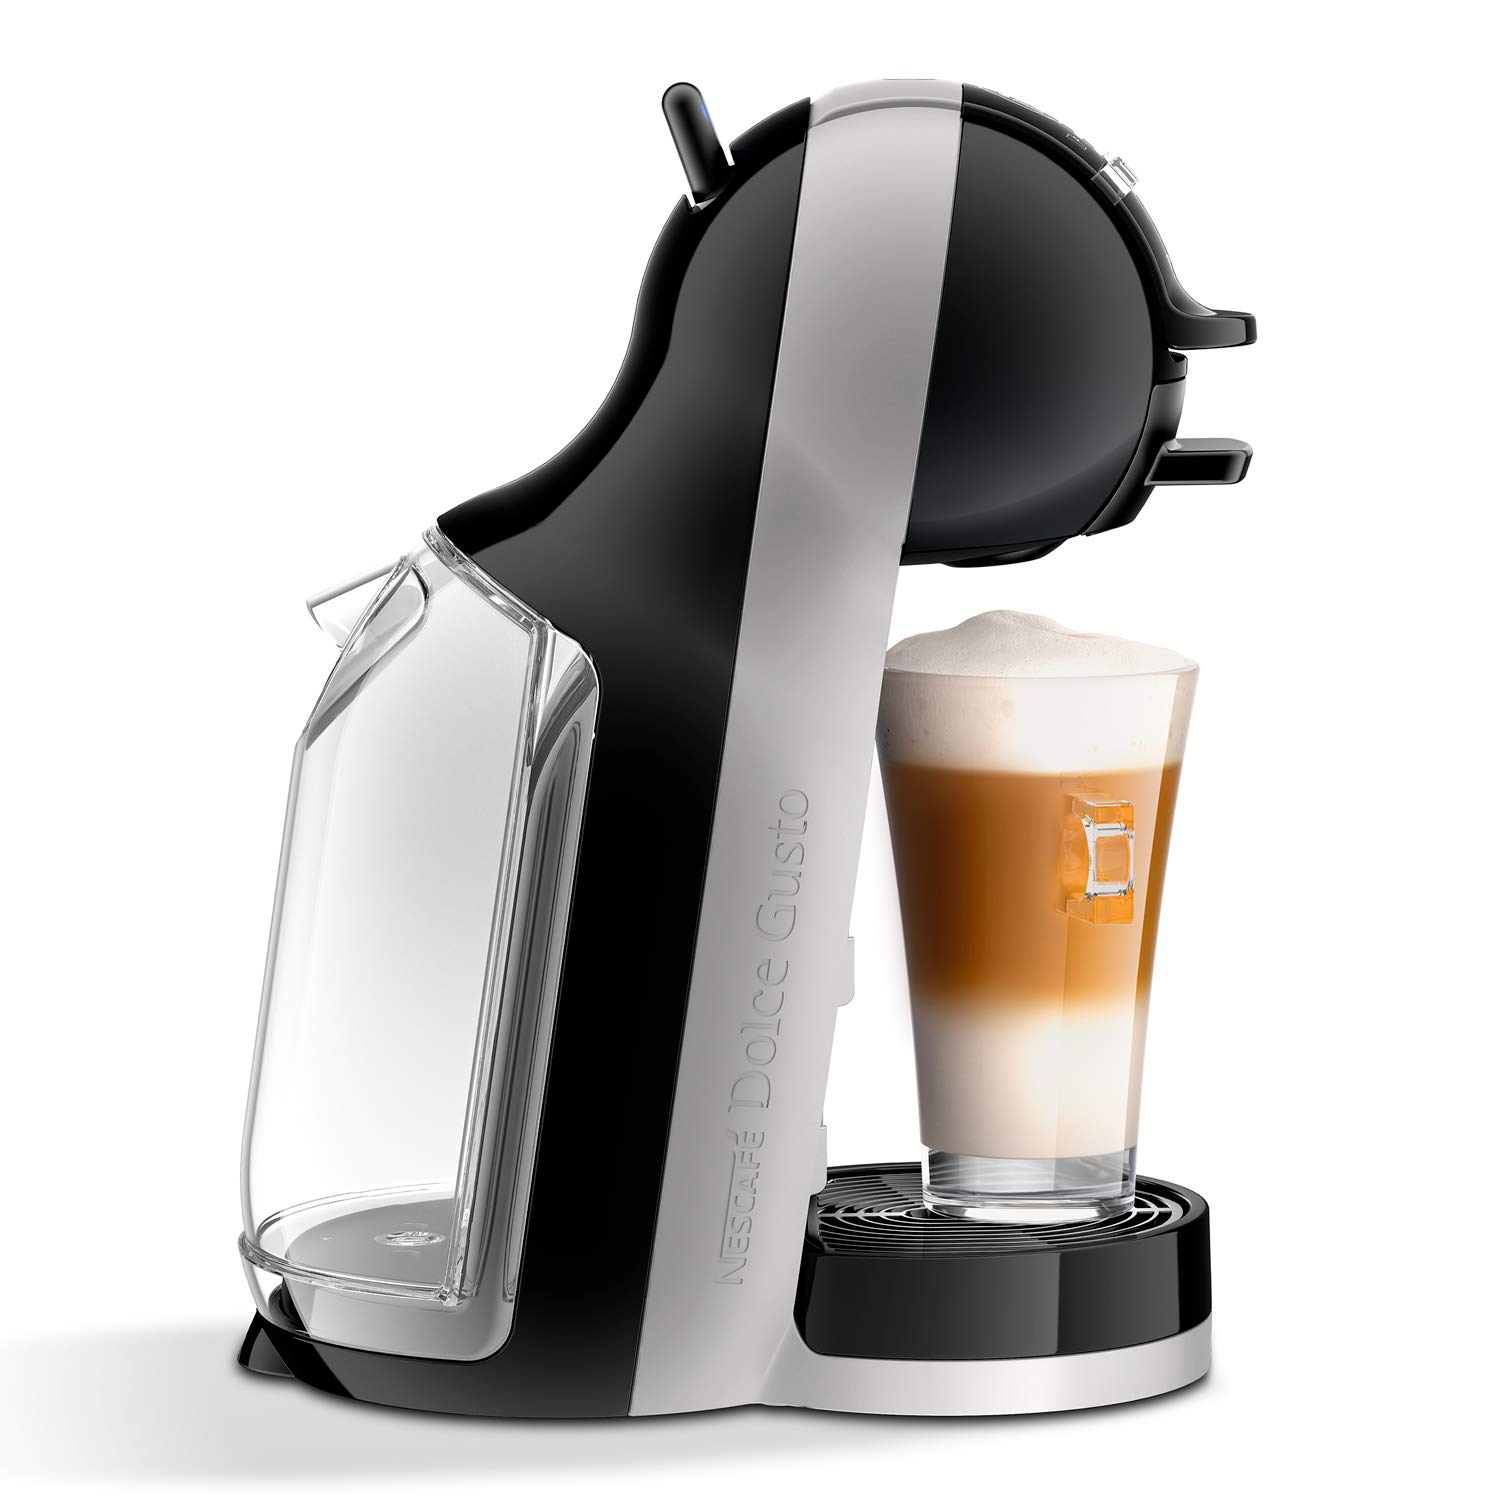 delonghi nescaf dolce gusto mini me pod coffee machine 1461w edg155bg 8004399332959 ebay